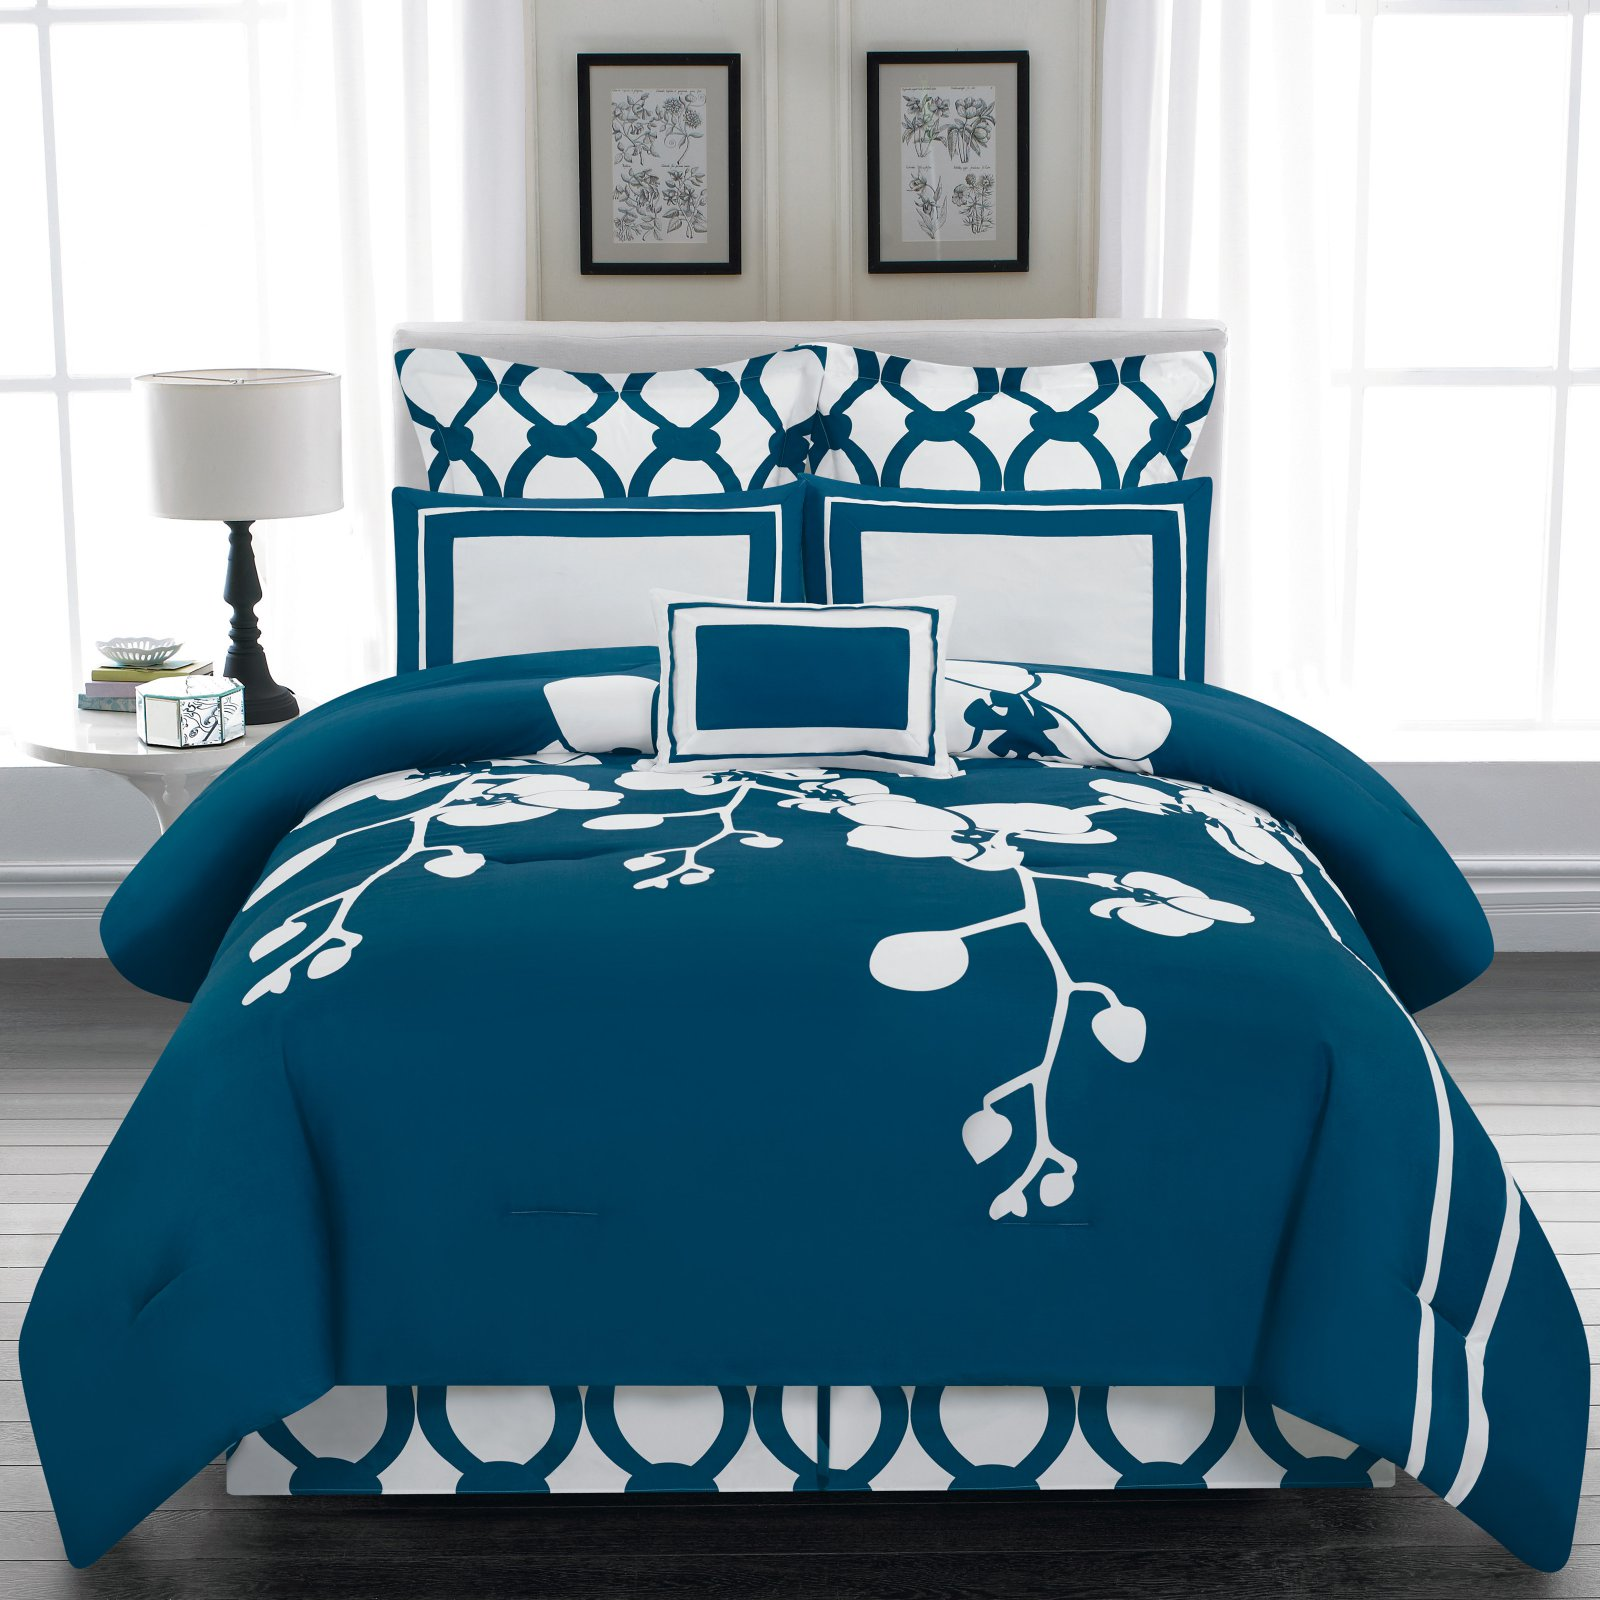 April Orchidea Flower 6 Piece Reversible Oversize/Overfilled Comforter Set by Duck River Textiles